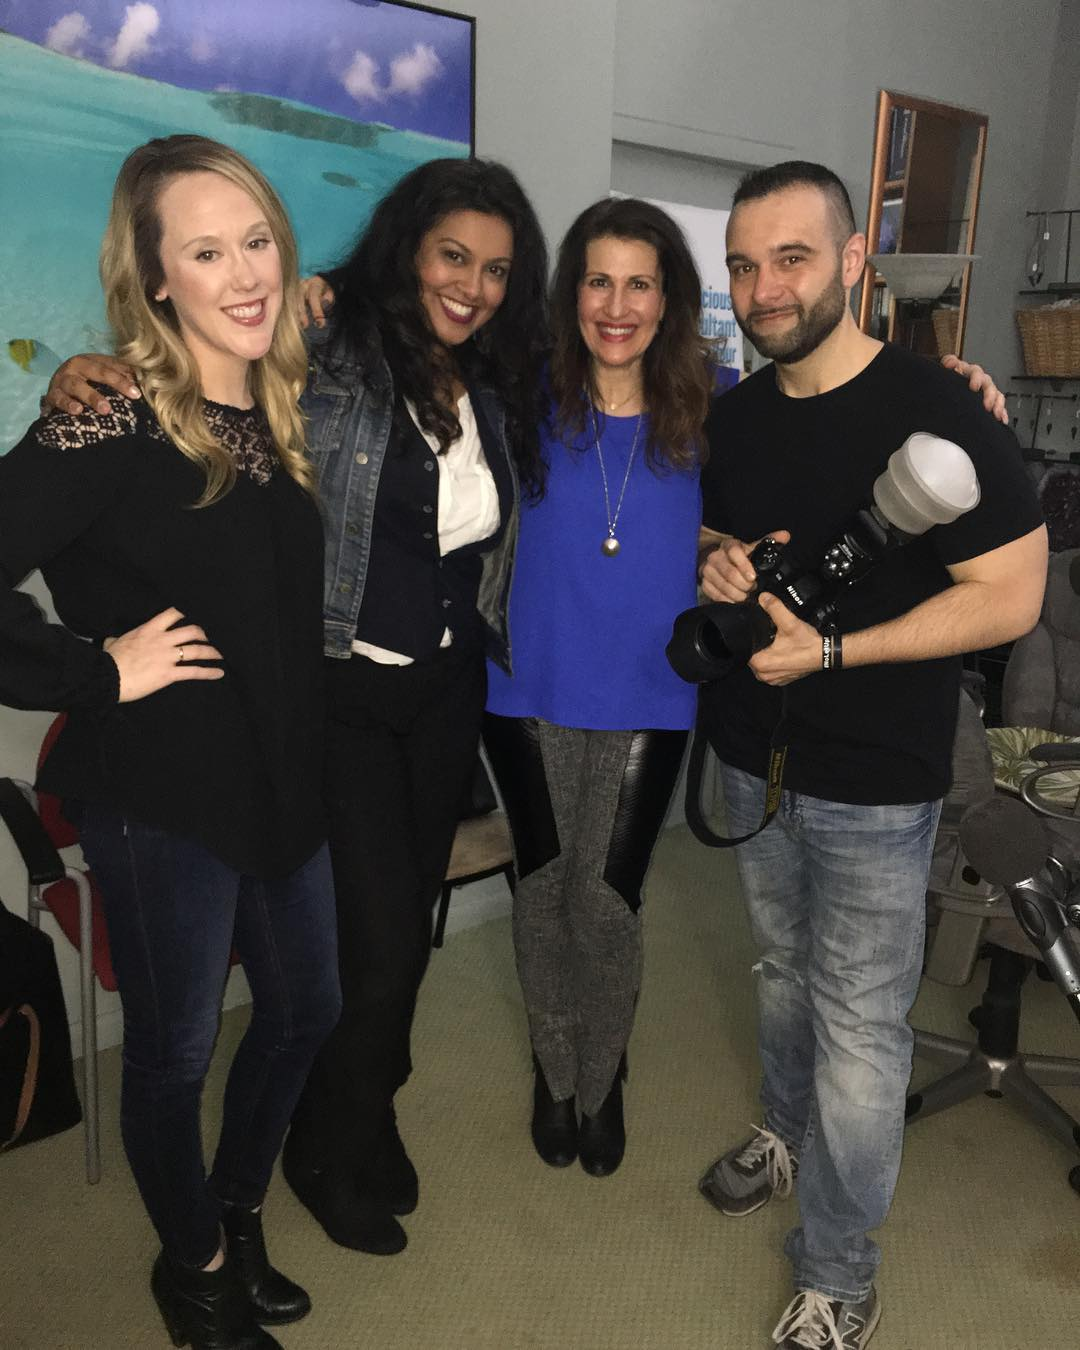 NYC Branded Lifestyle Portrait Photographer John DeMato Productions on FOllowMe Friday with Joan and Priya